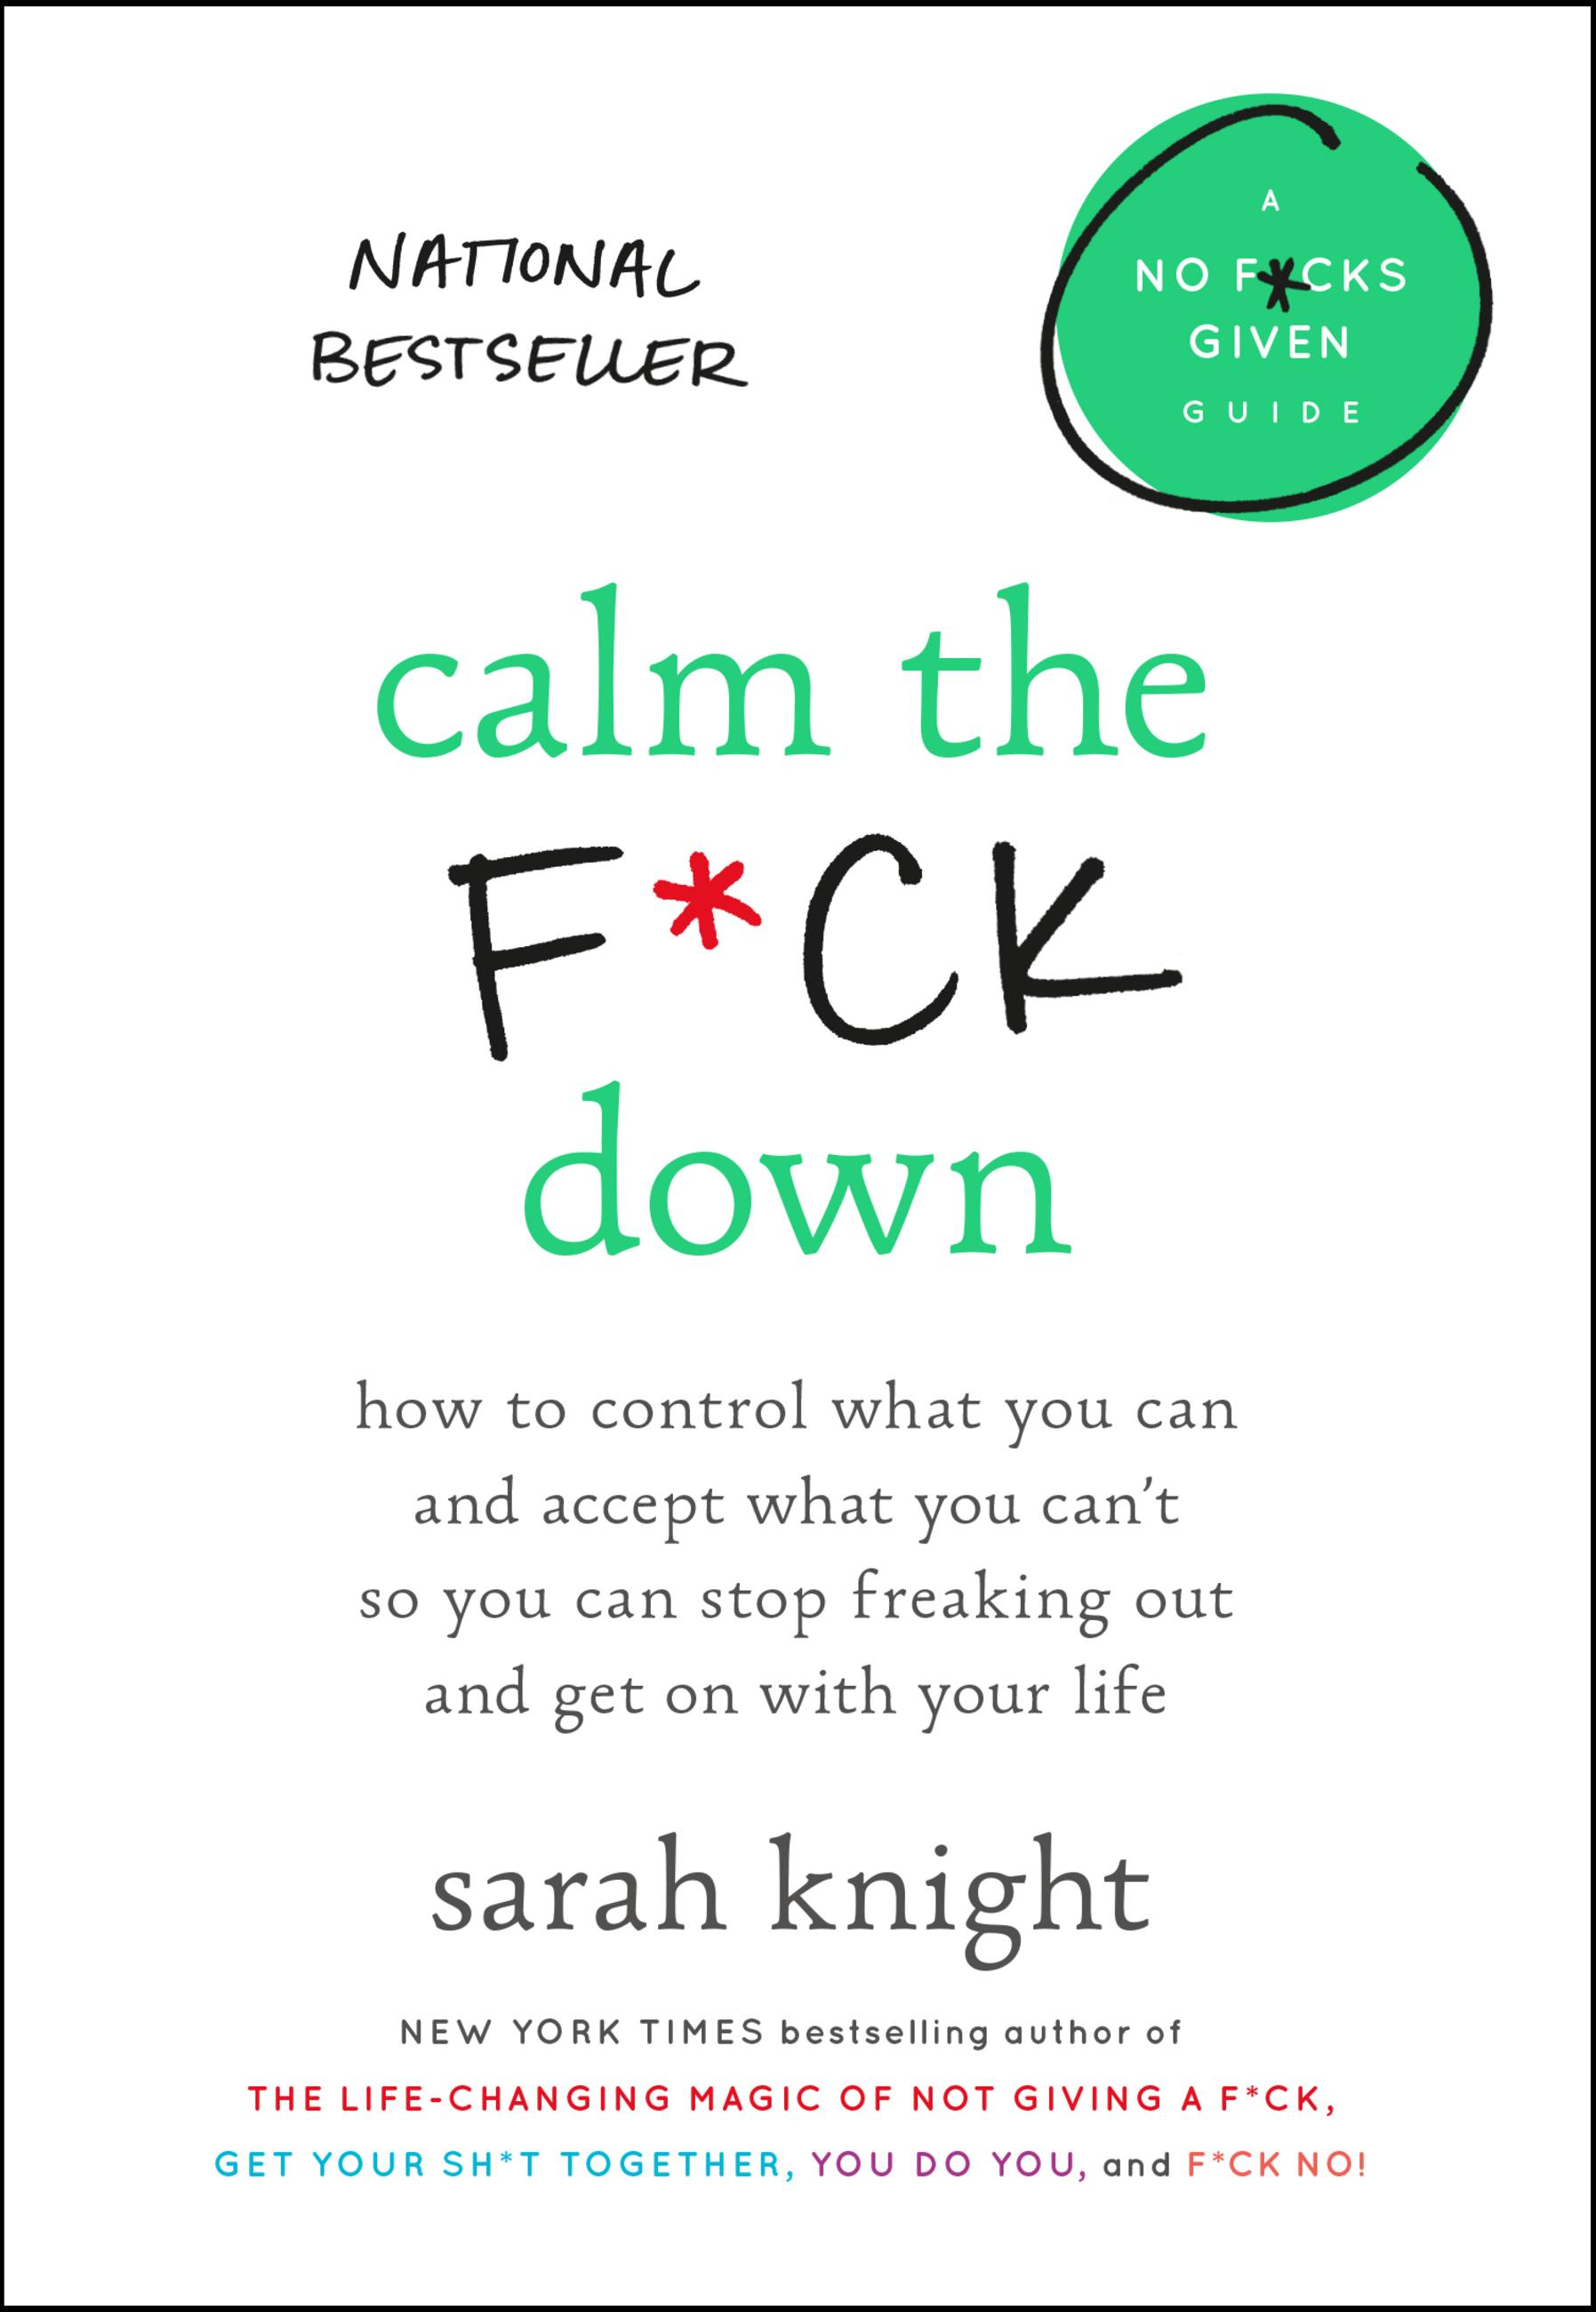 Calm the f*ck down how to control what you can and accept what you can't so you can stop freaking out and get on with your life